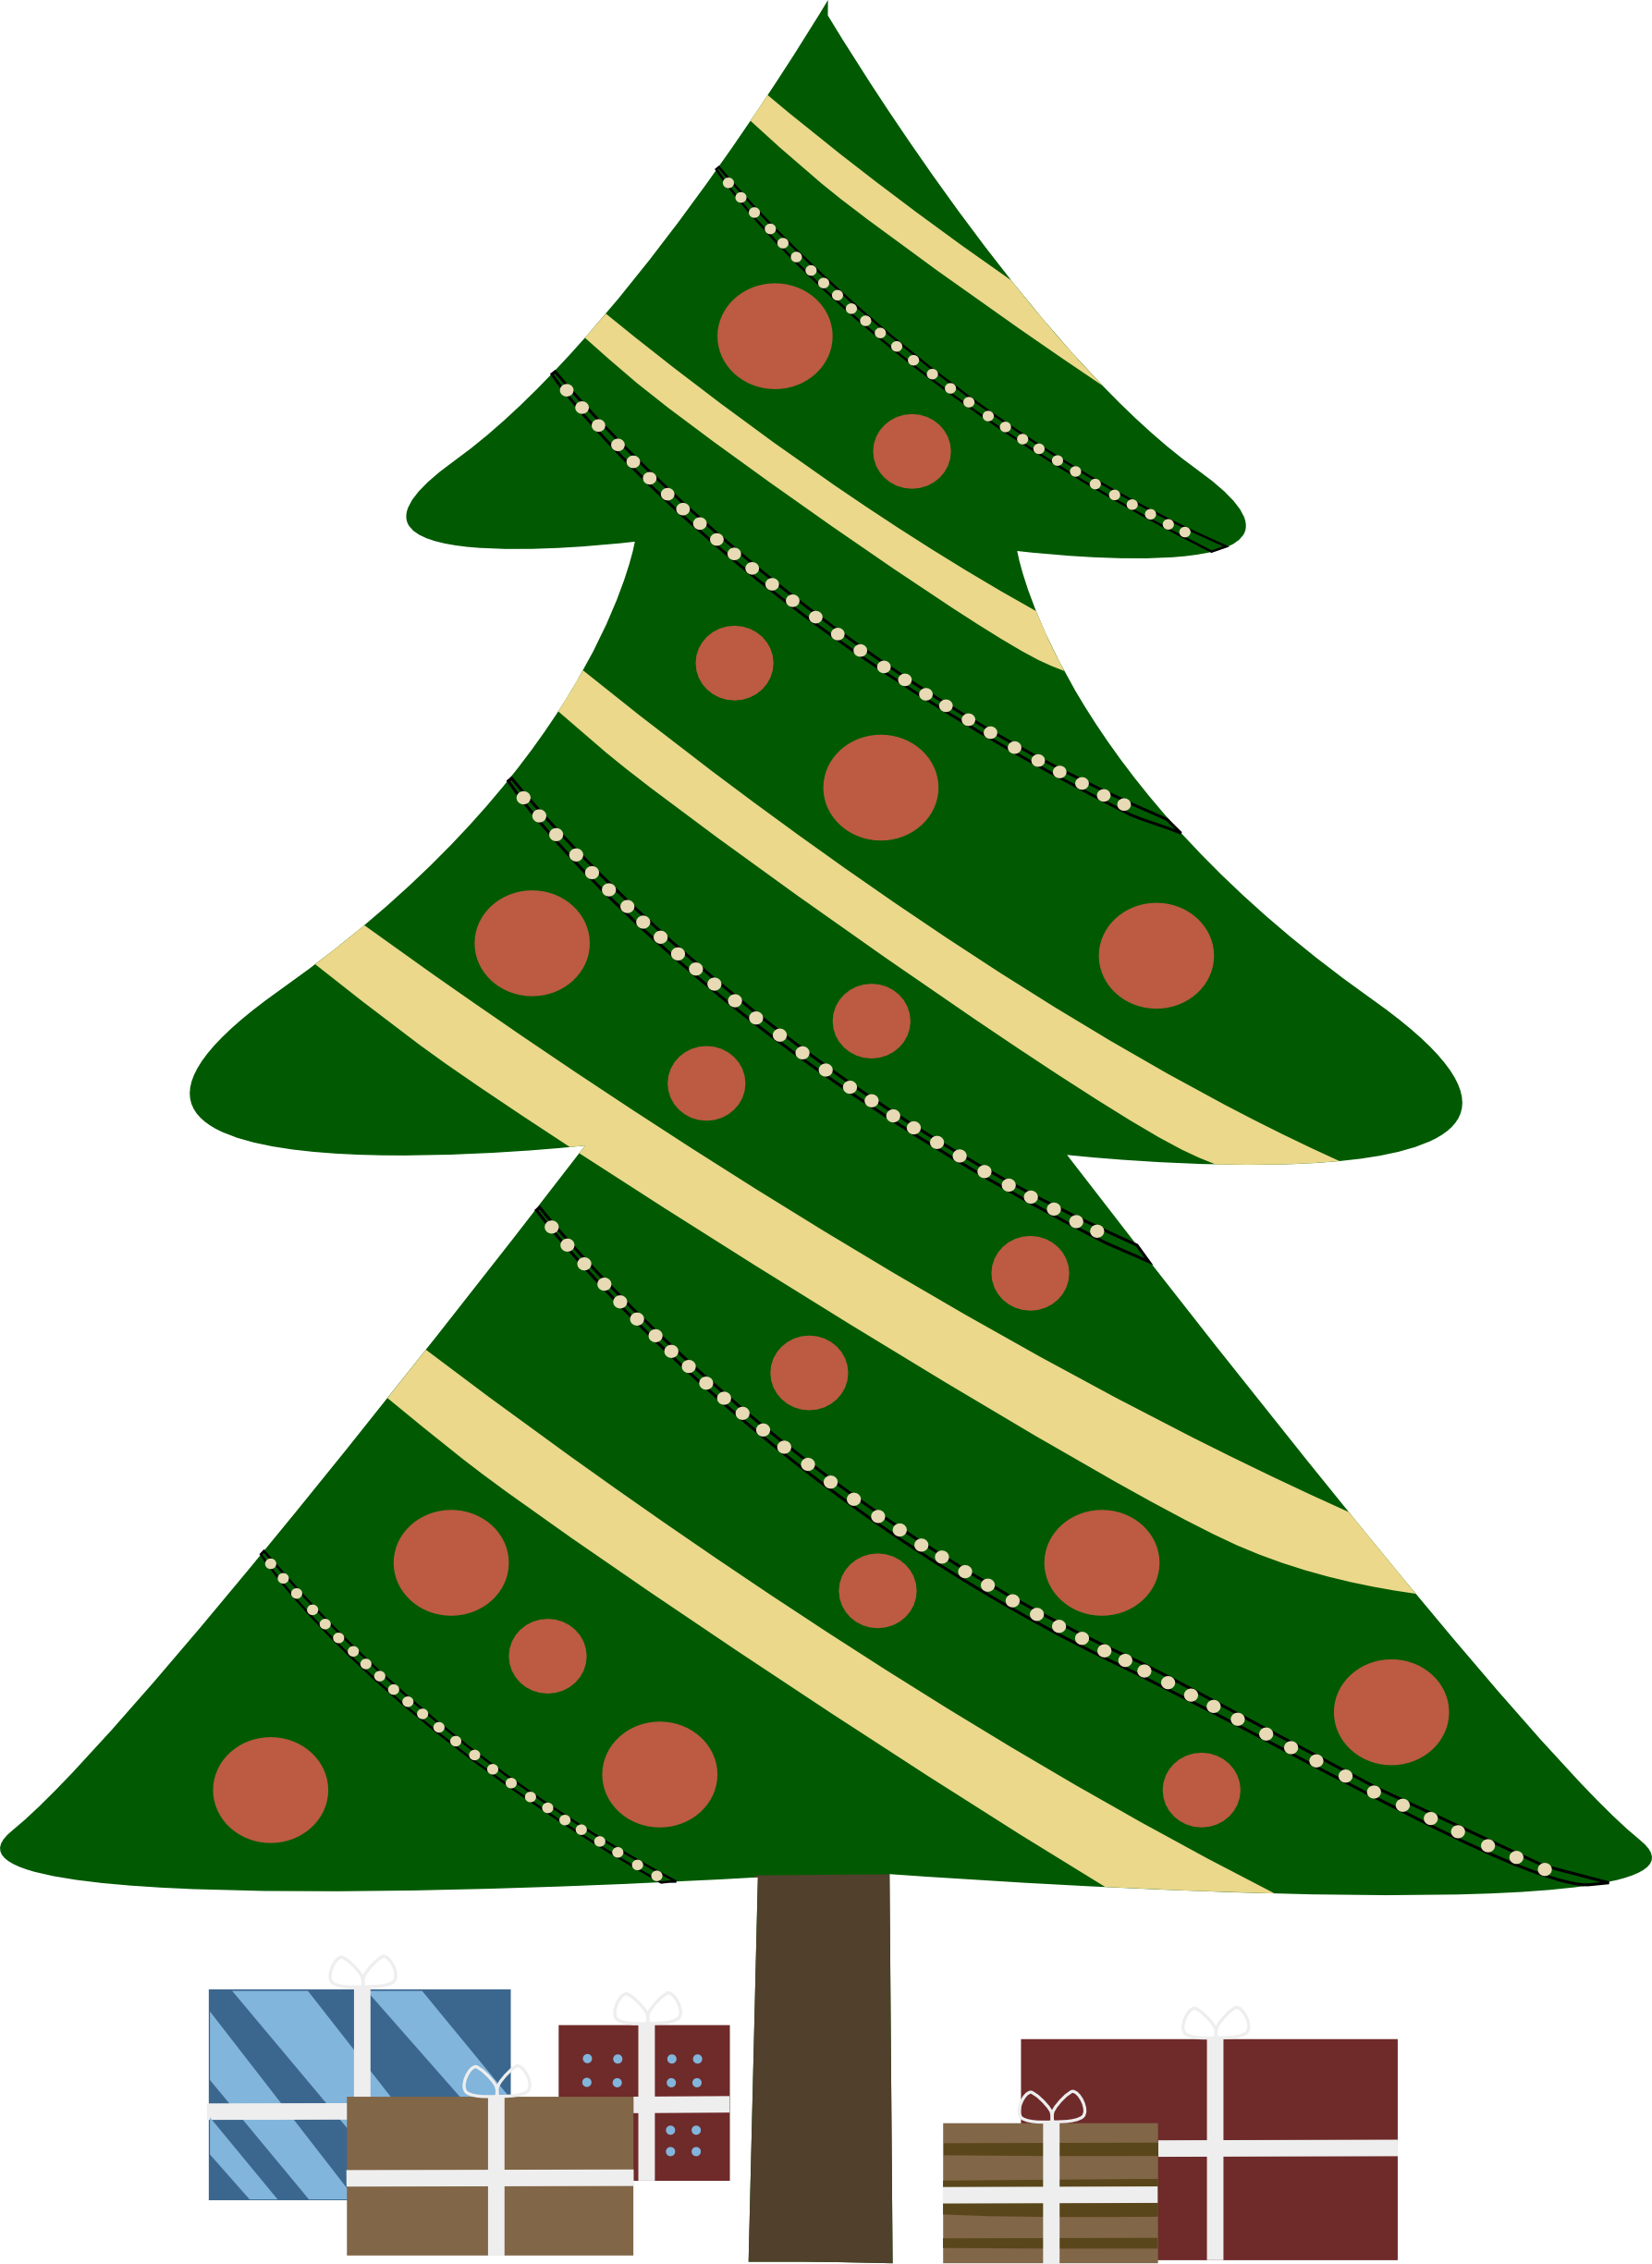 Cartoon Christmas Tree Png - Xmas Stuff For Animated Christmas Tree Png - Clip Art Library